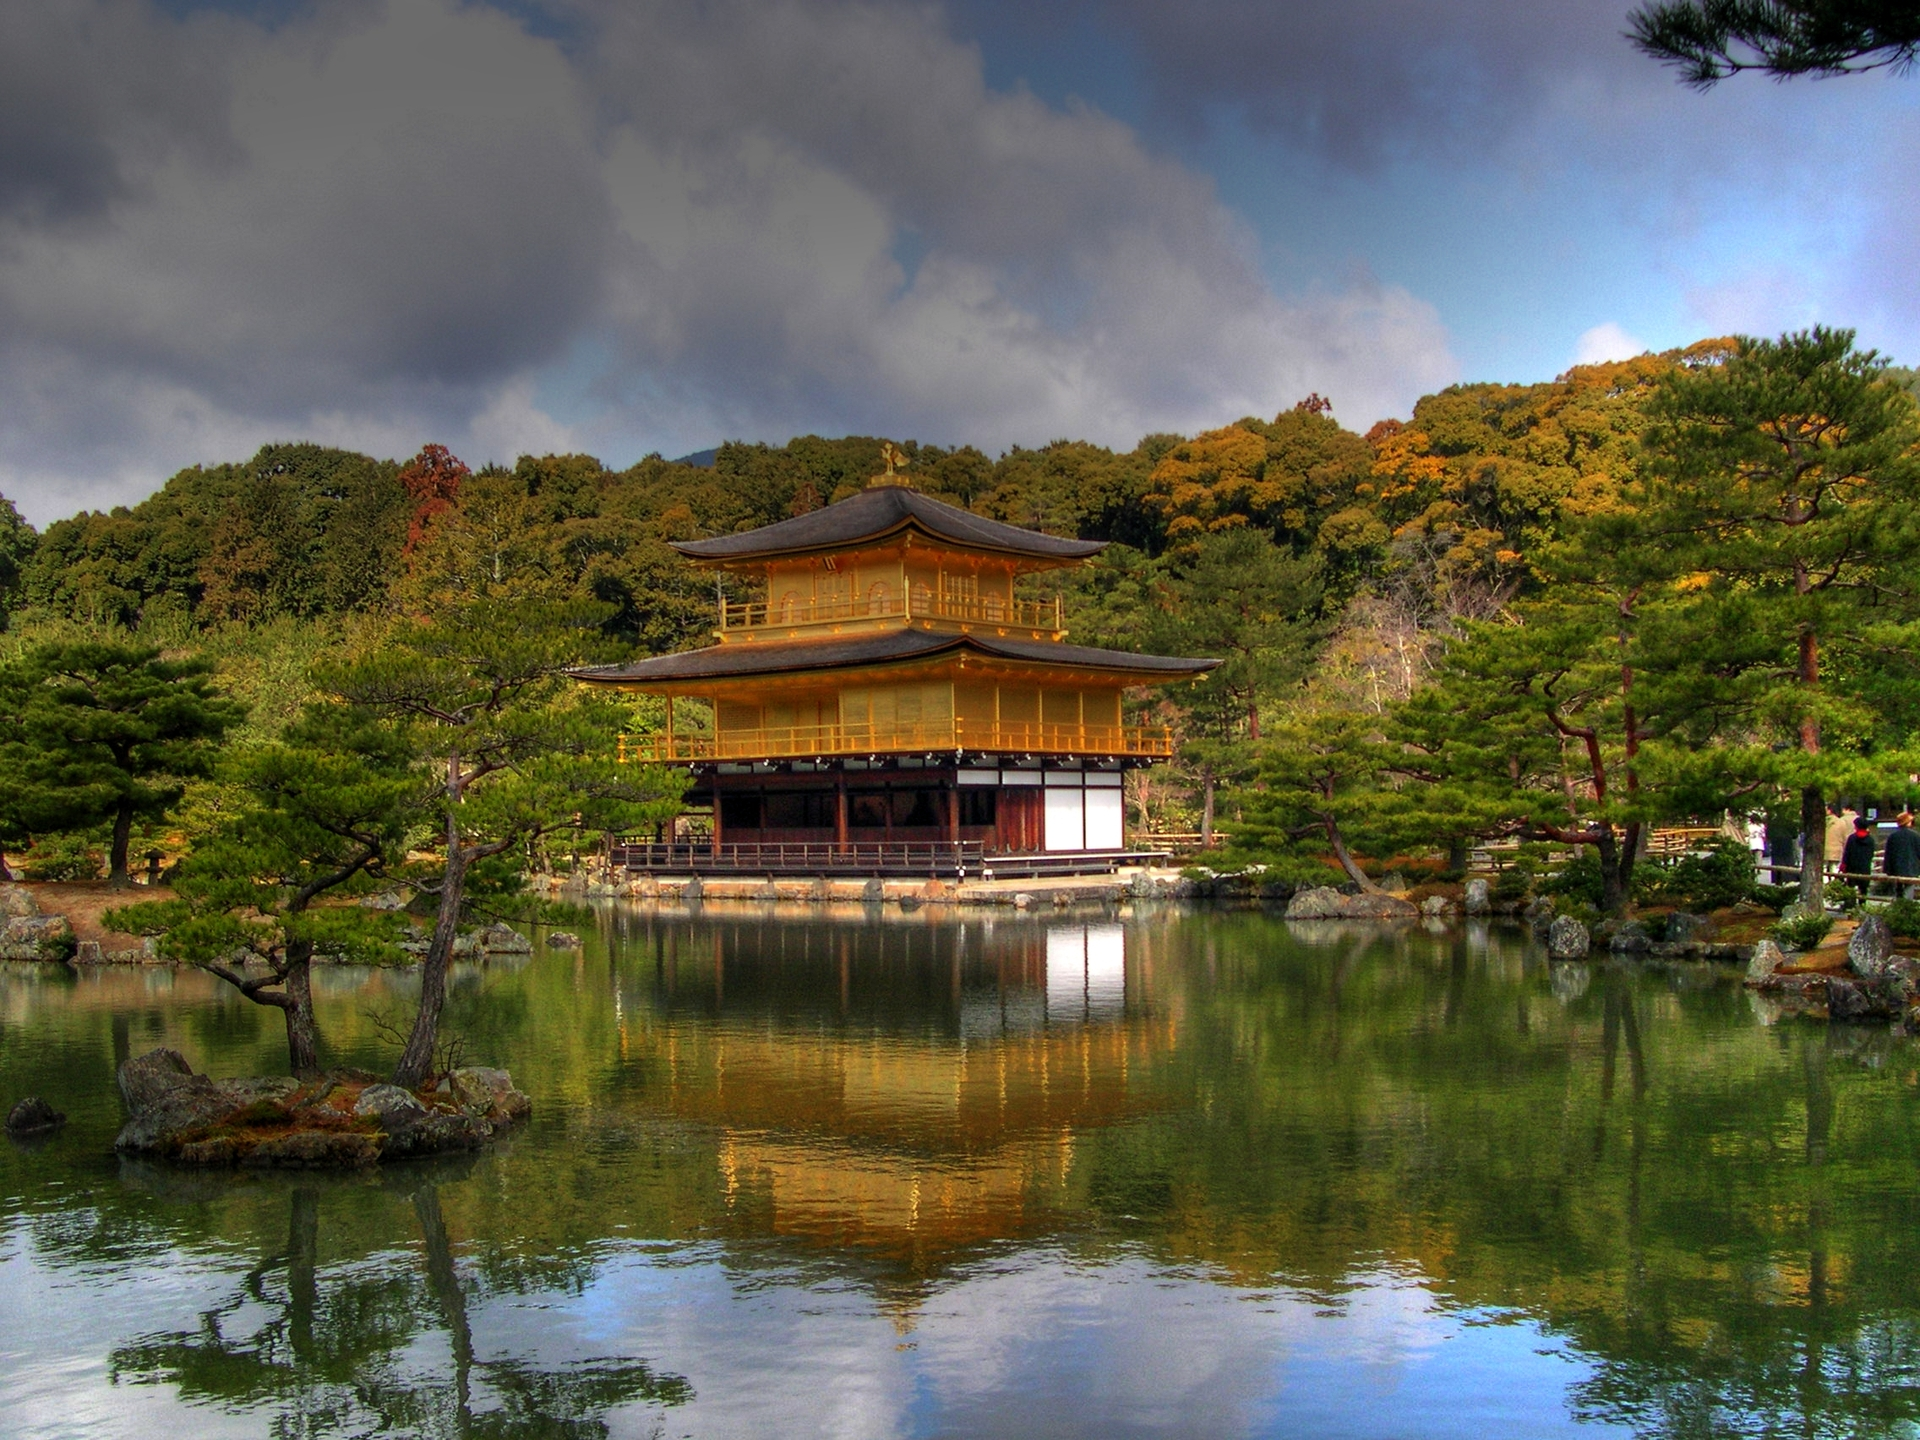 Scenery Wallpaper Japanese Scenery Wallpaper 1920x1440